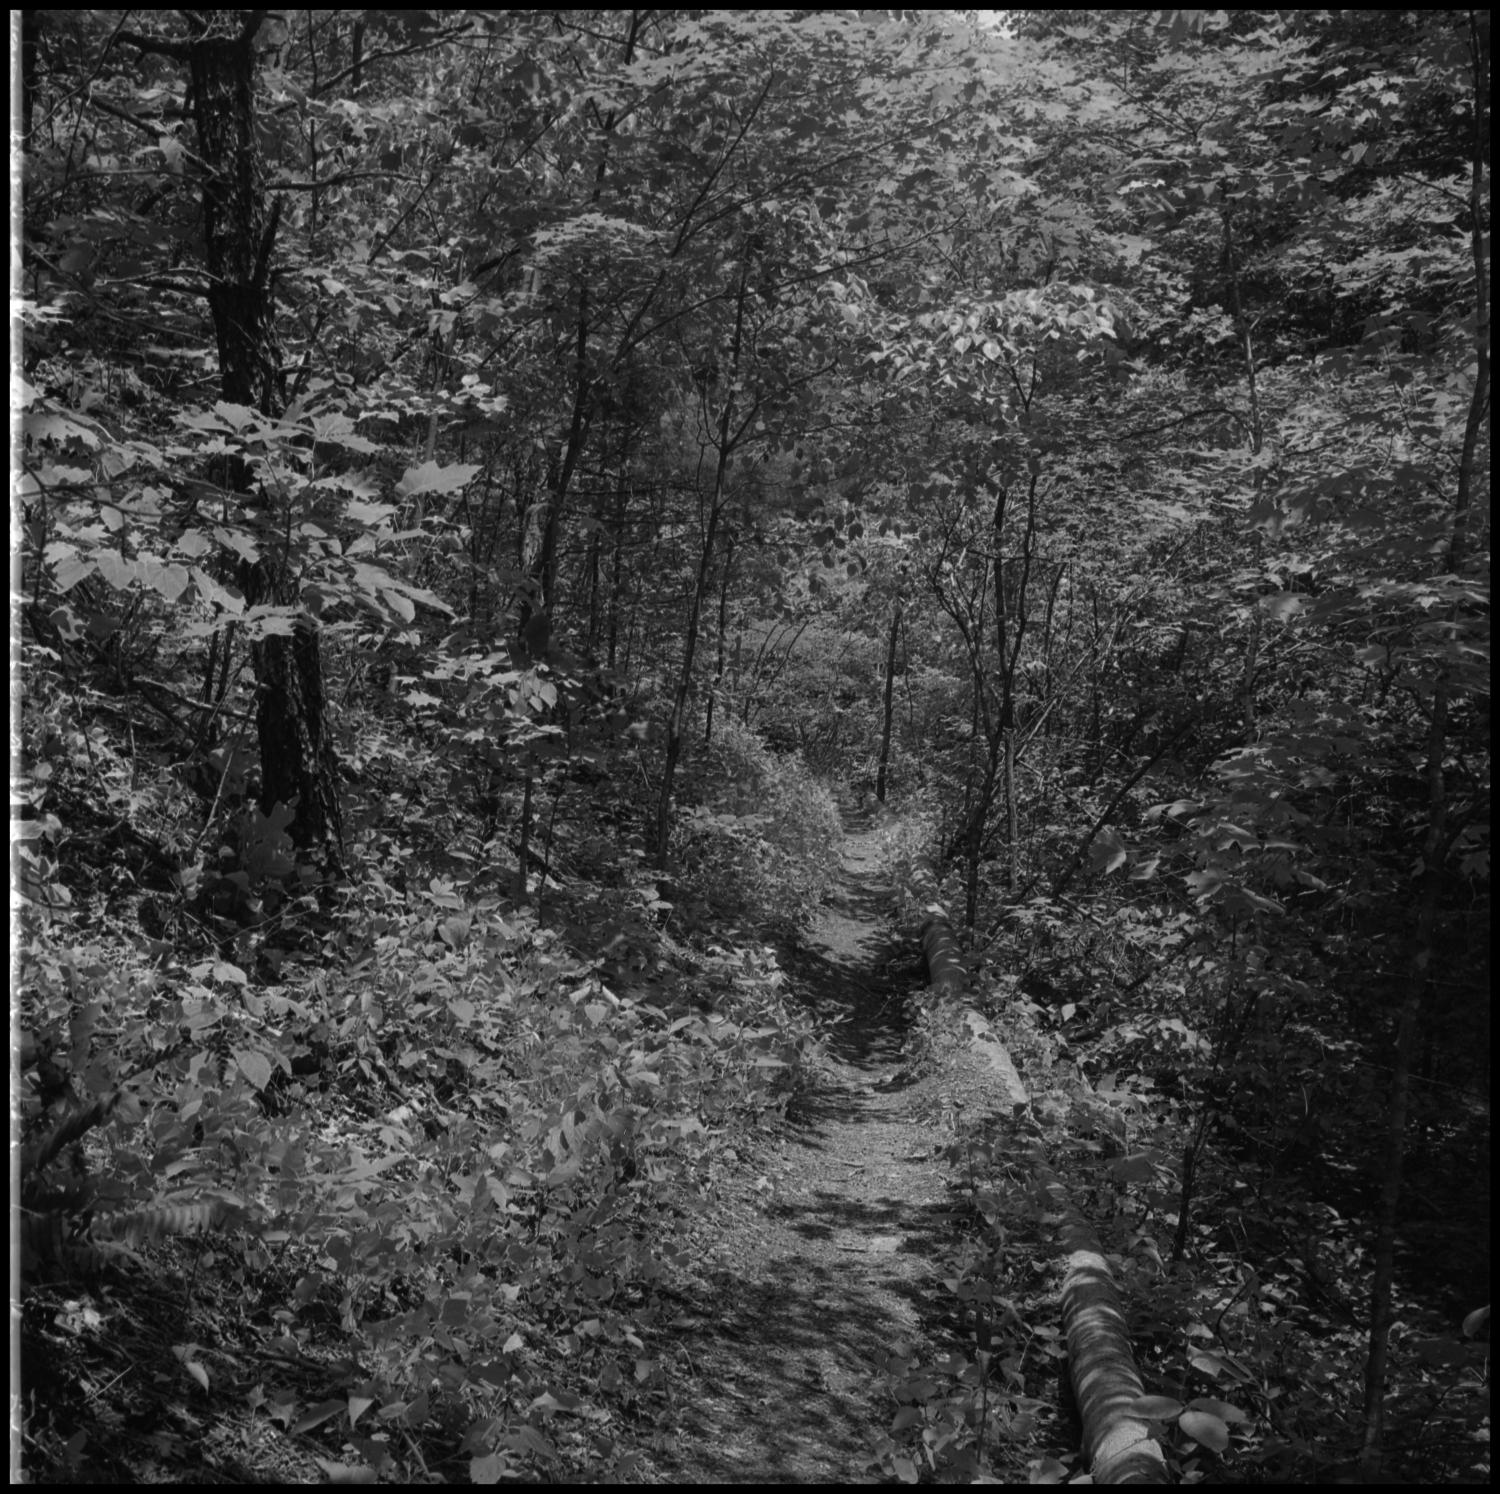 """[Wooded path], Photograph of a trail or path through the woods. The side of the trail is lined with logs to one side. The envelope containing the negative is inscribed with the word """"mood"""".,"""